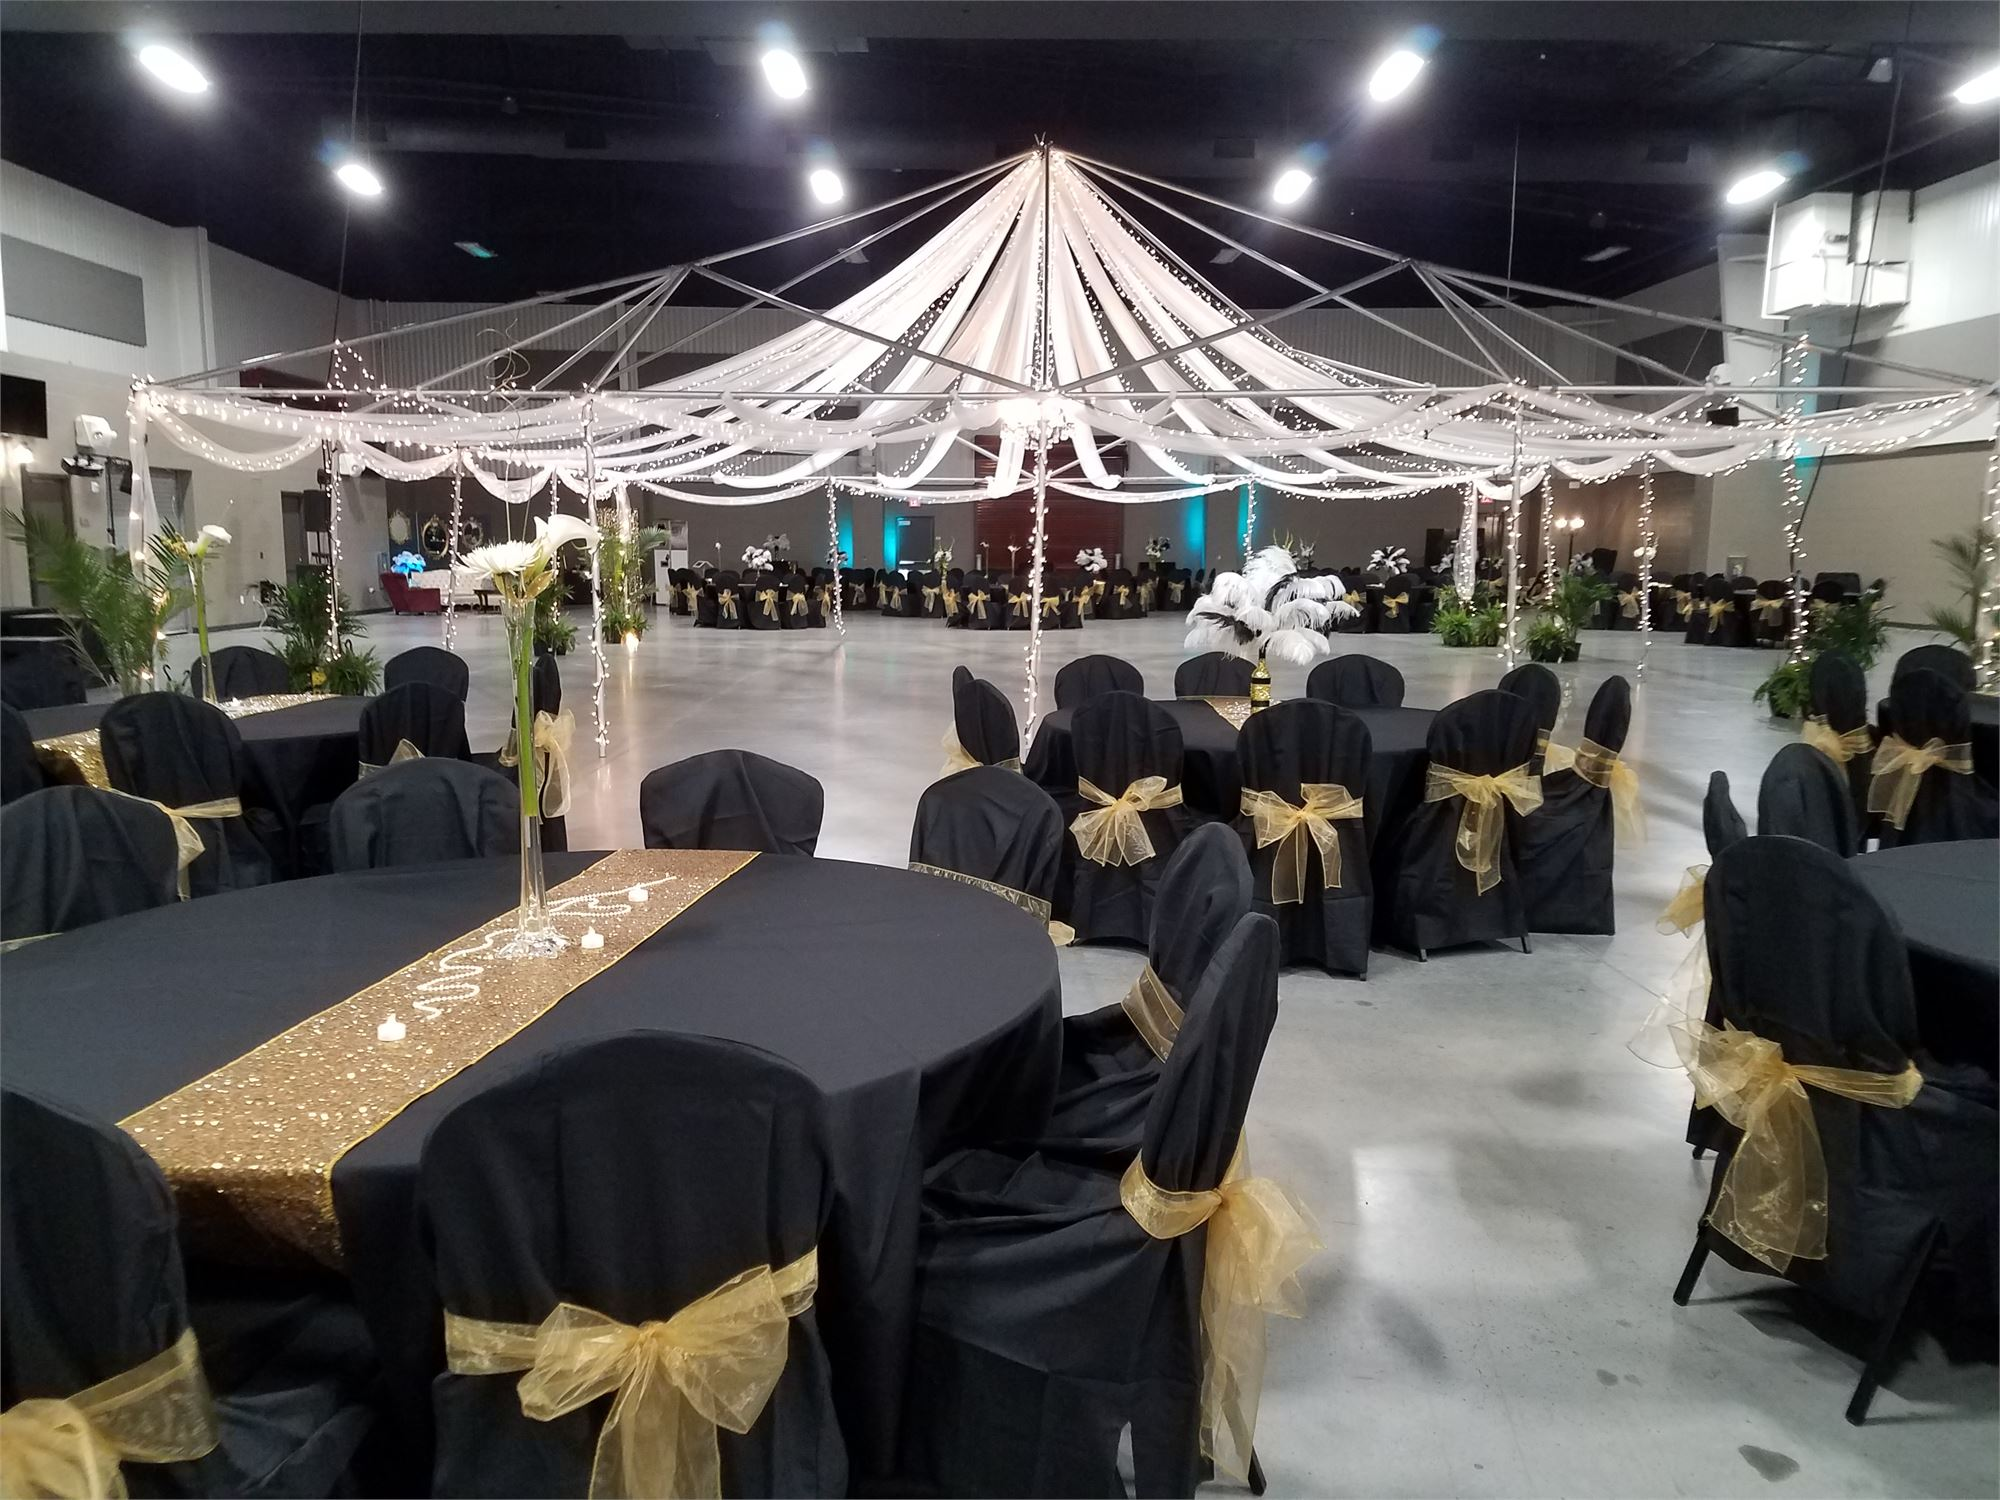 Indoor Expo Hall decorated for the Taylor Prom. Tables covered in black table clothes and a canopy with lights over the dance floor